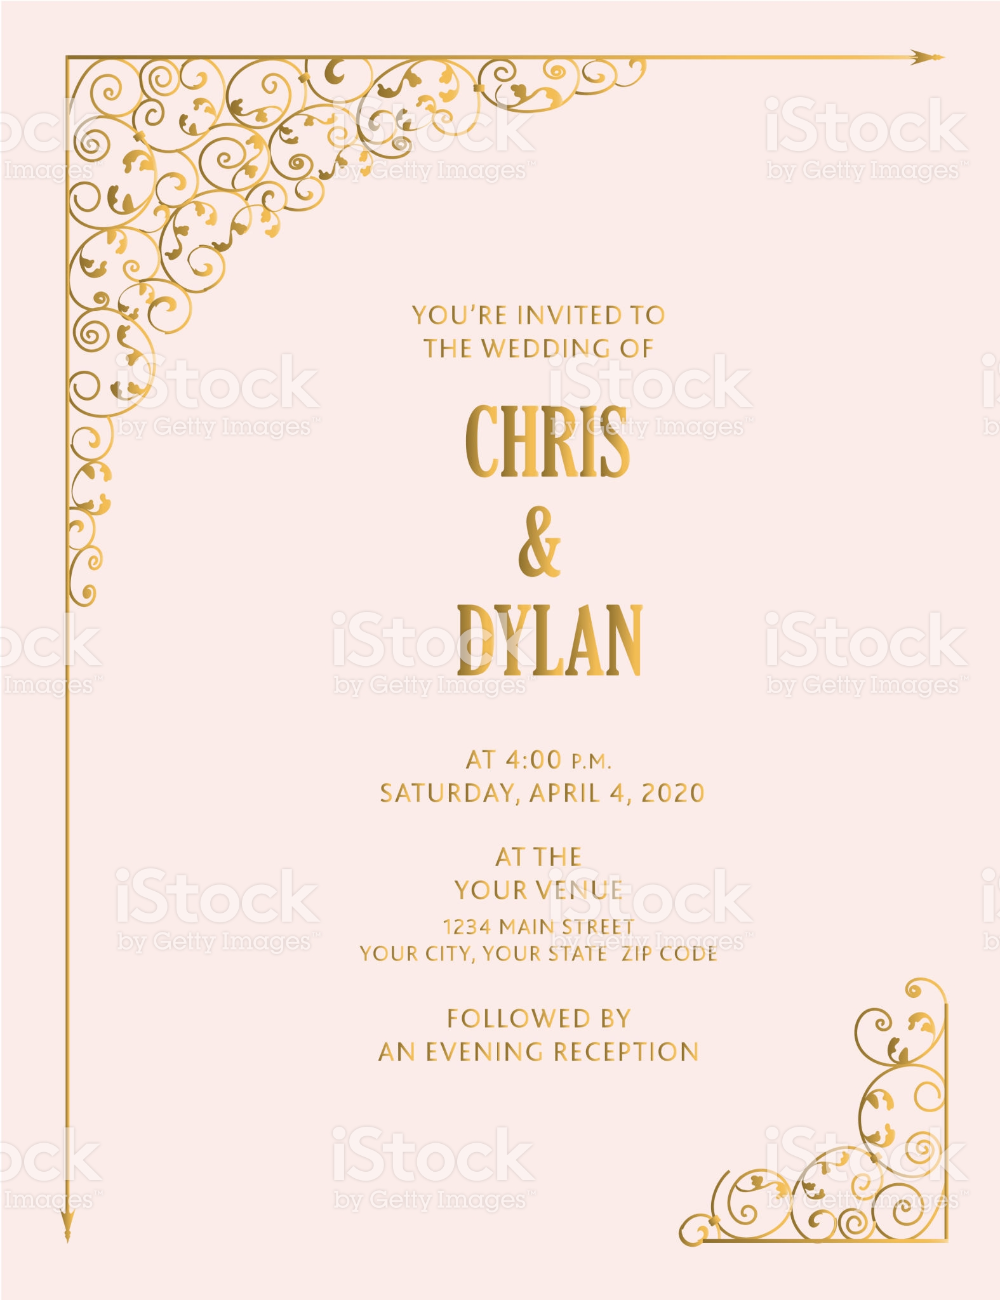 Vector illustration of a Wedding design Reply Card template with